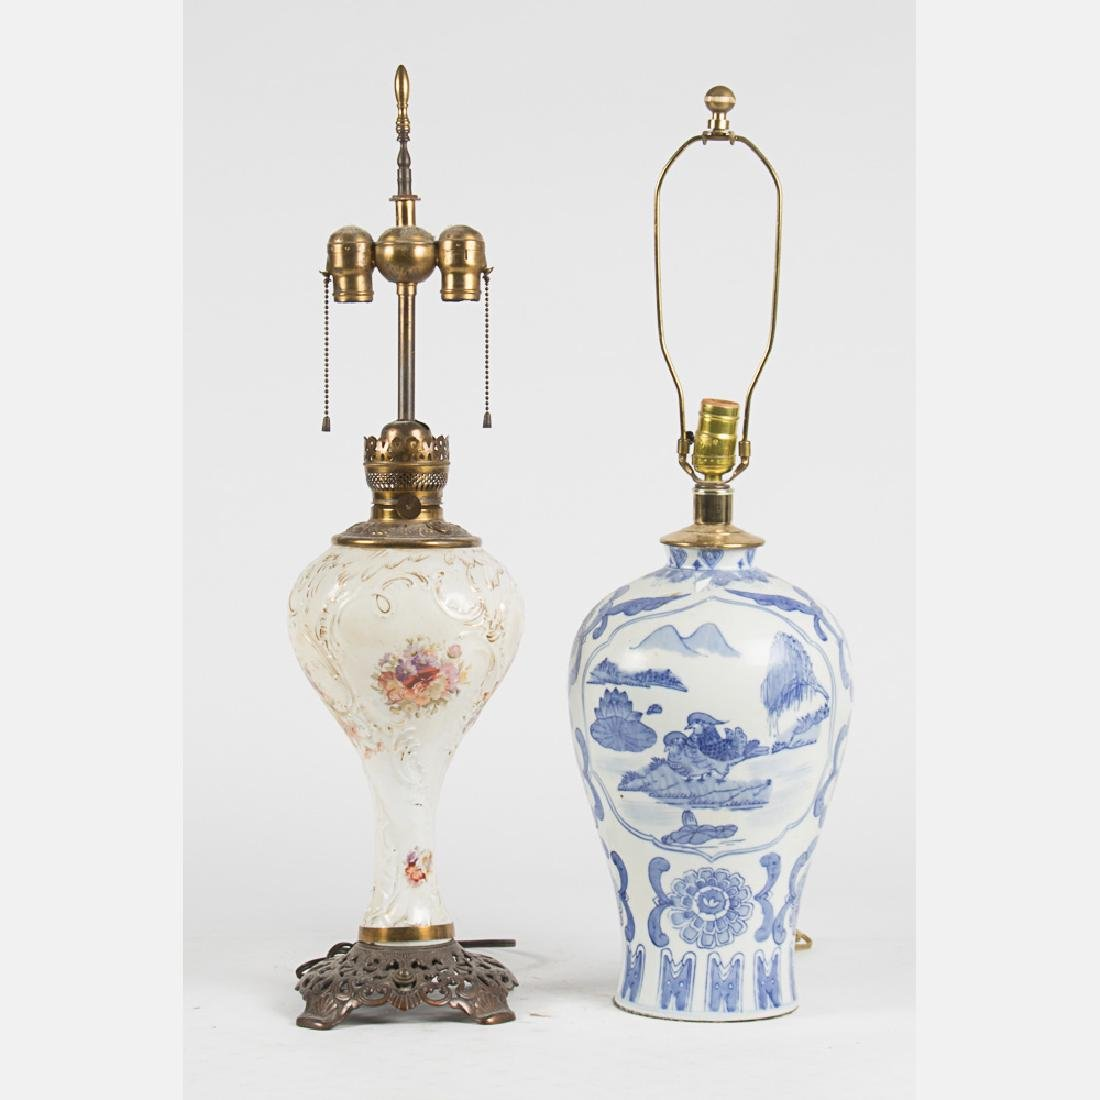 A Chinese Blue and White Porcelain Table Lamp, 20th